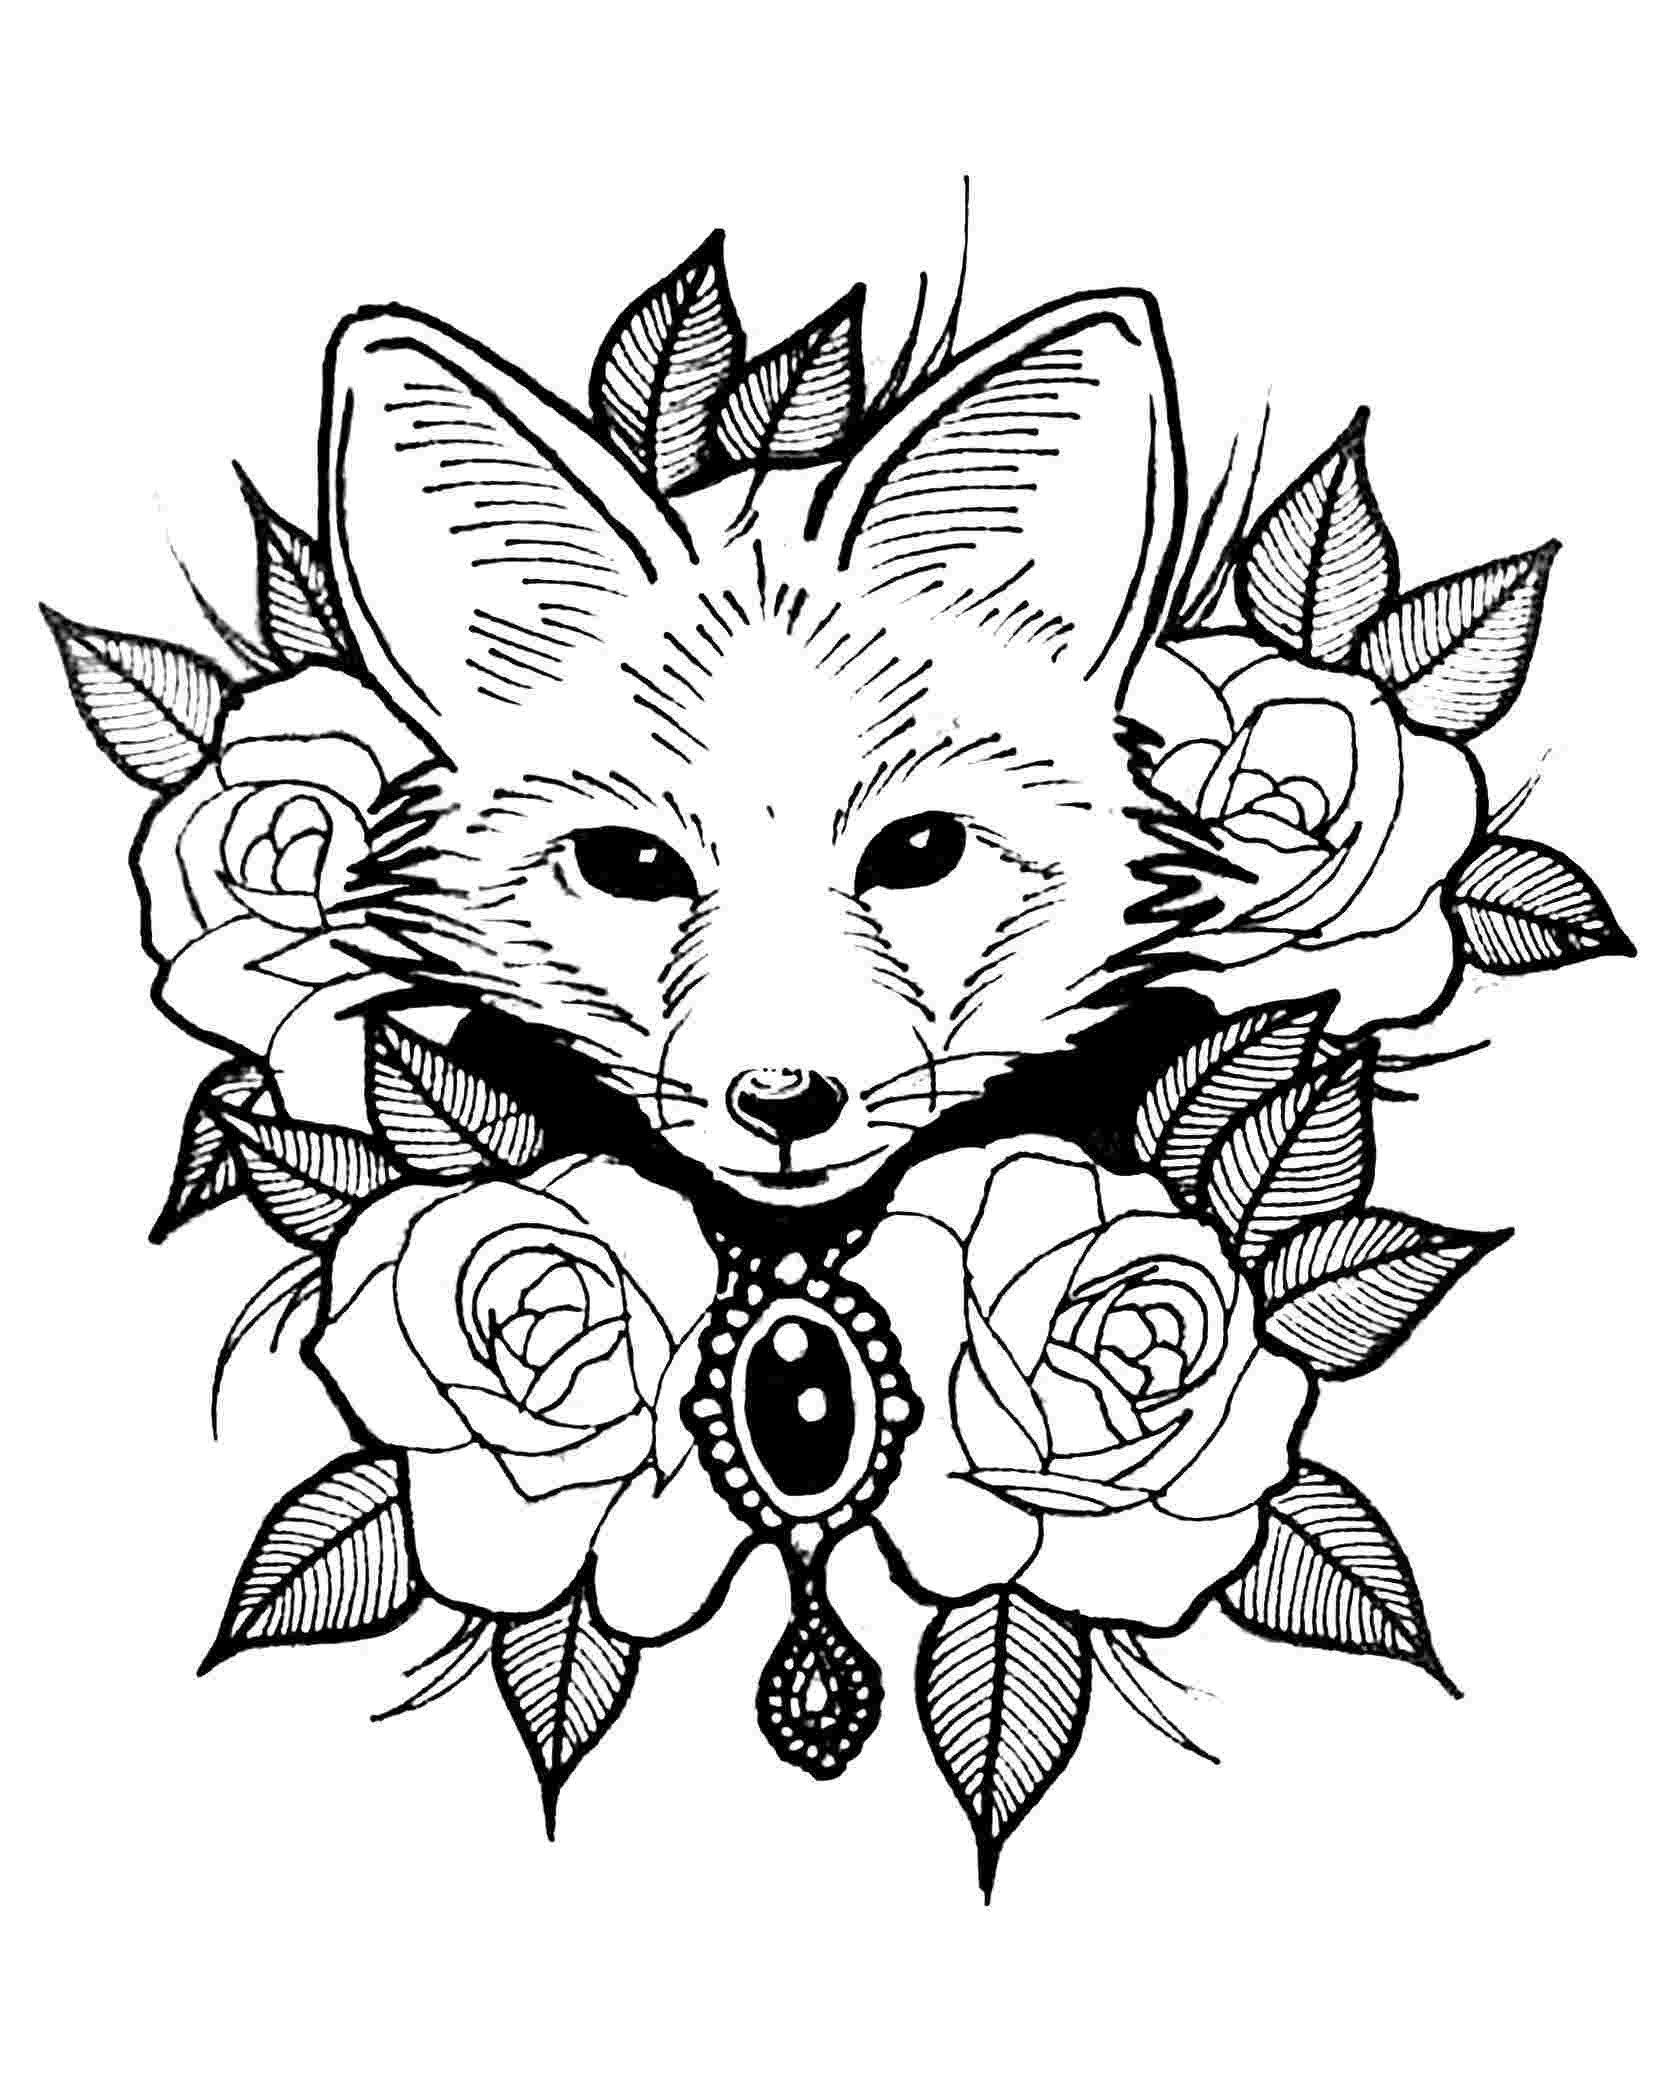 Animal Printable Coloring Pages Coloring Pages Mandala Coloring Printable Animals Best Fox Coloring Page Zoo Animal Coloring Pages Animal Coloring Books